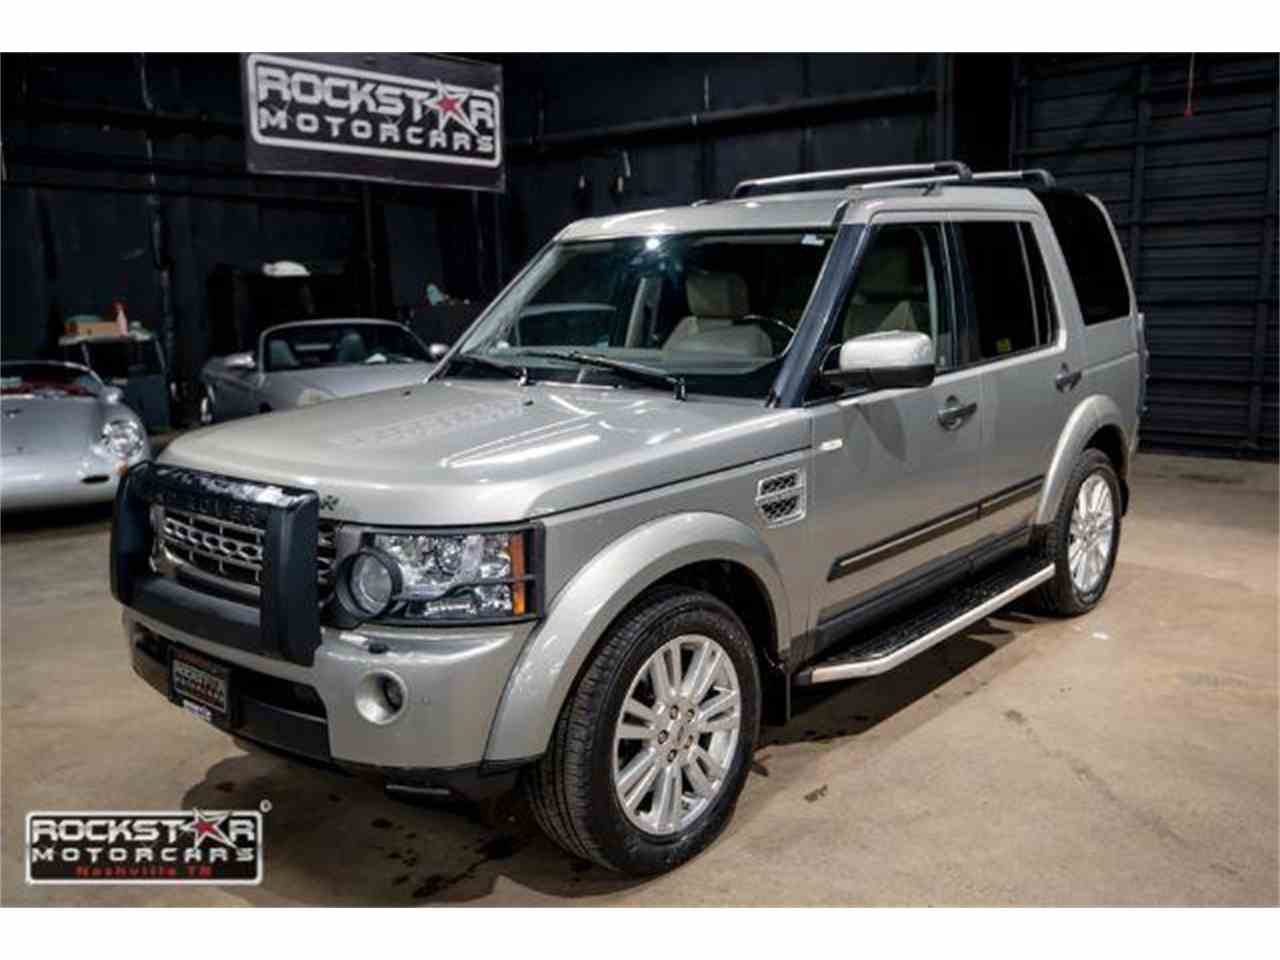 the very rover exceedingly aku subtle comes ll suv landrover hard metamorphosis boxy grille outward blog and auto in a an better makes reworked you unmistakably notice land for look